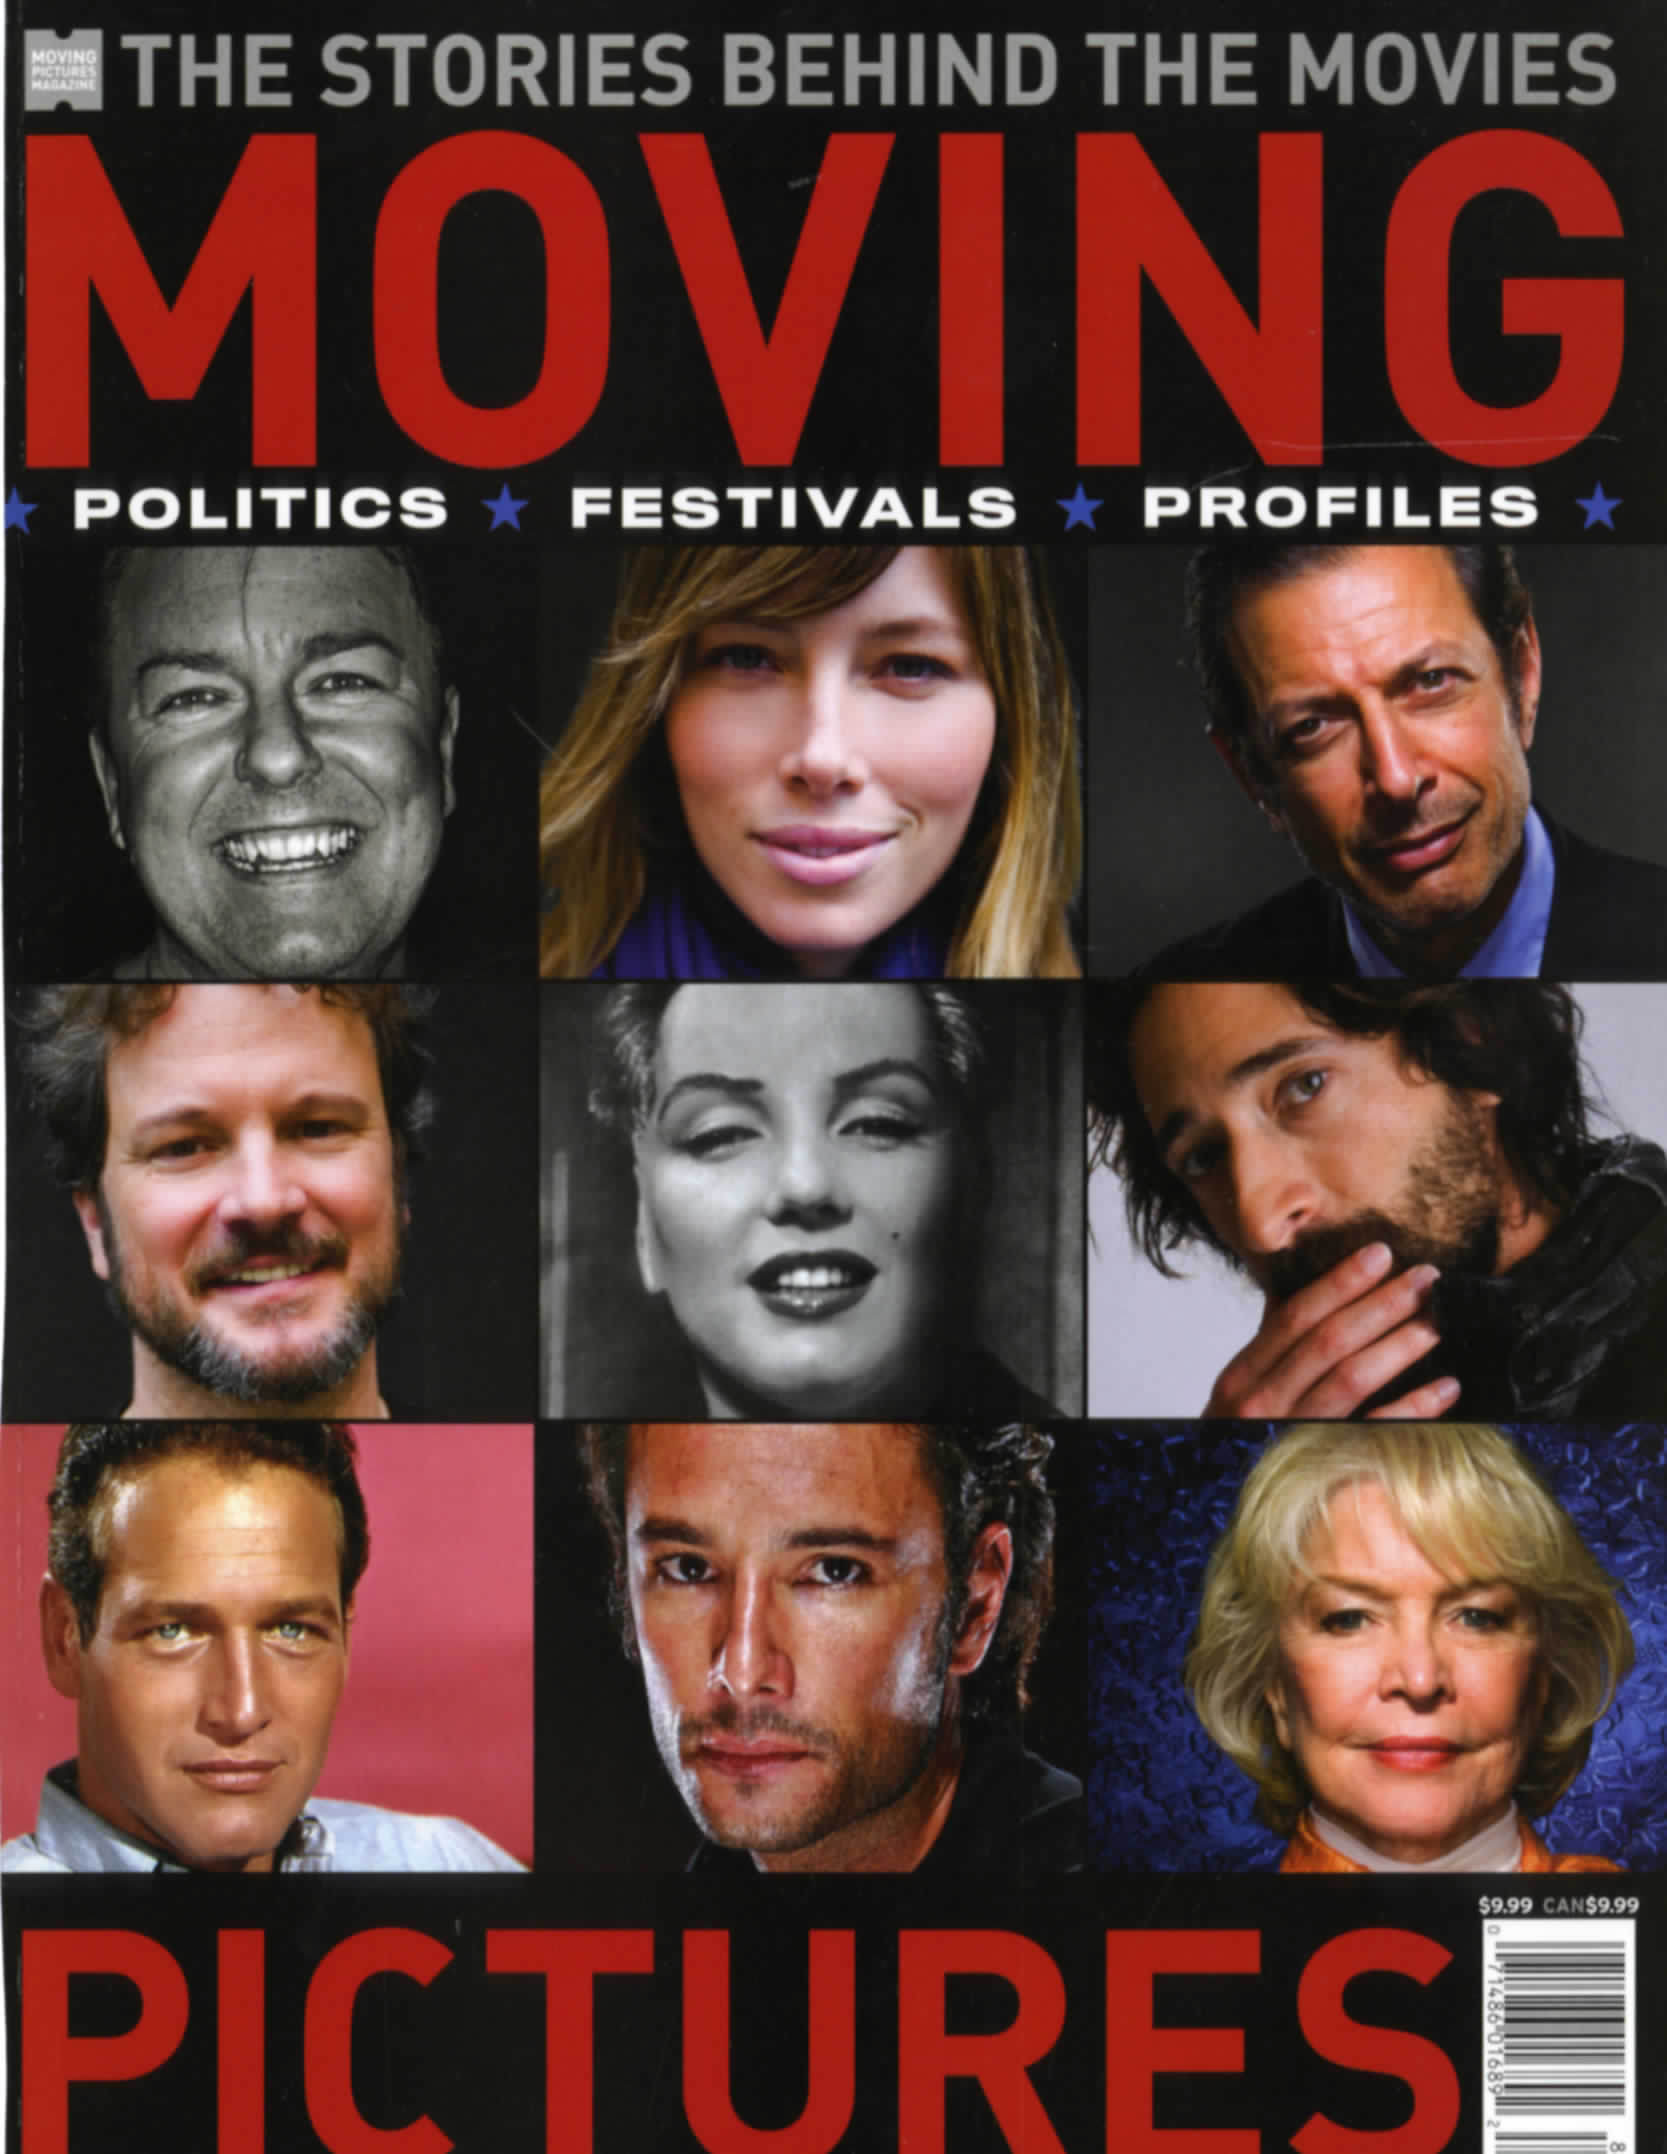 magazine cover, the stories behind moving pictures with the faces of nine famous actors on the cover